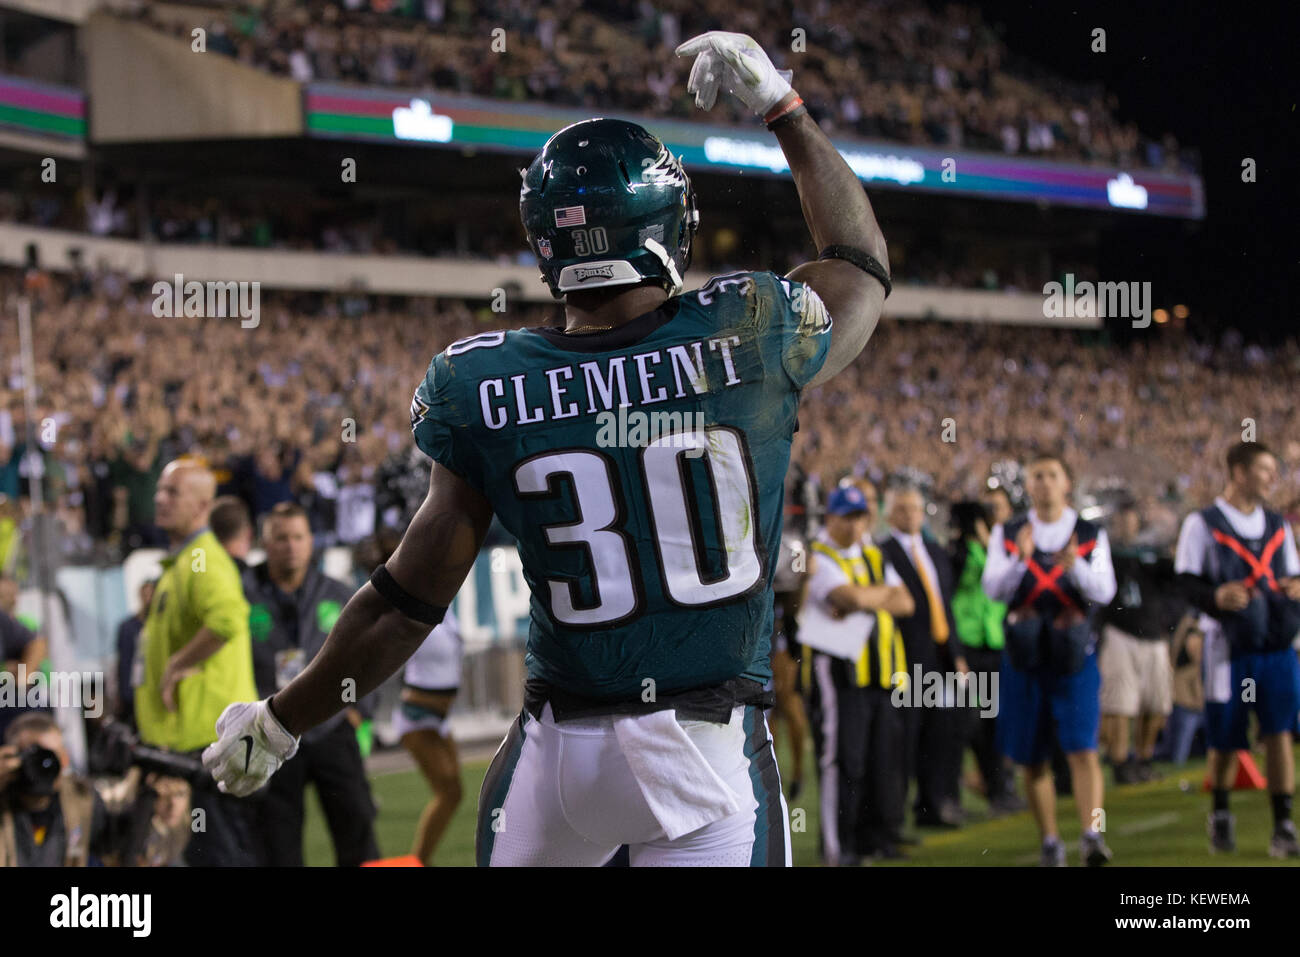 October 23, 2017: Philadelphia Eagles running back Corey Clement (30) reacts to his touchdown catch during the NFL - Stock Image